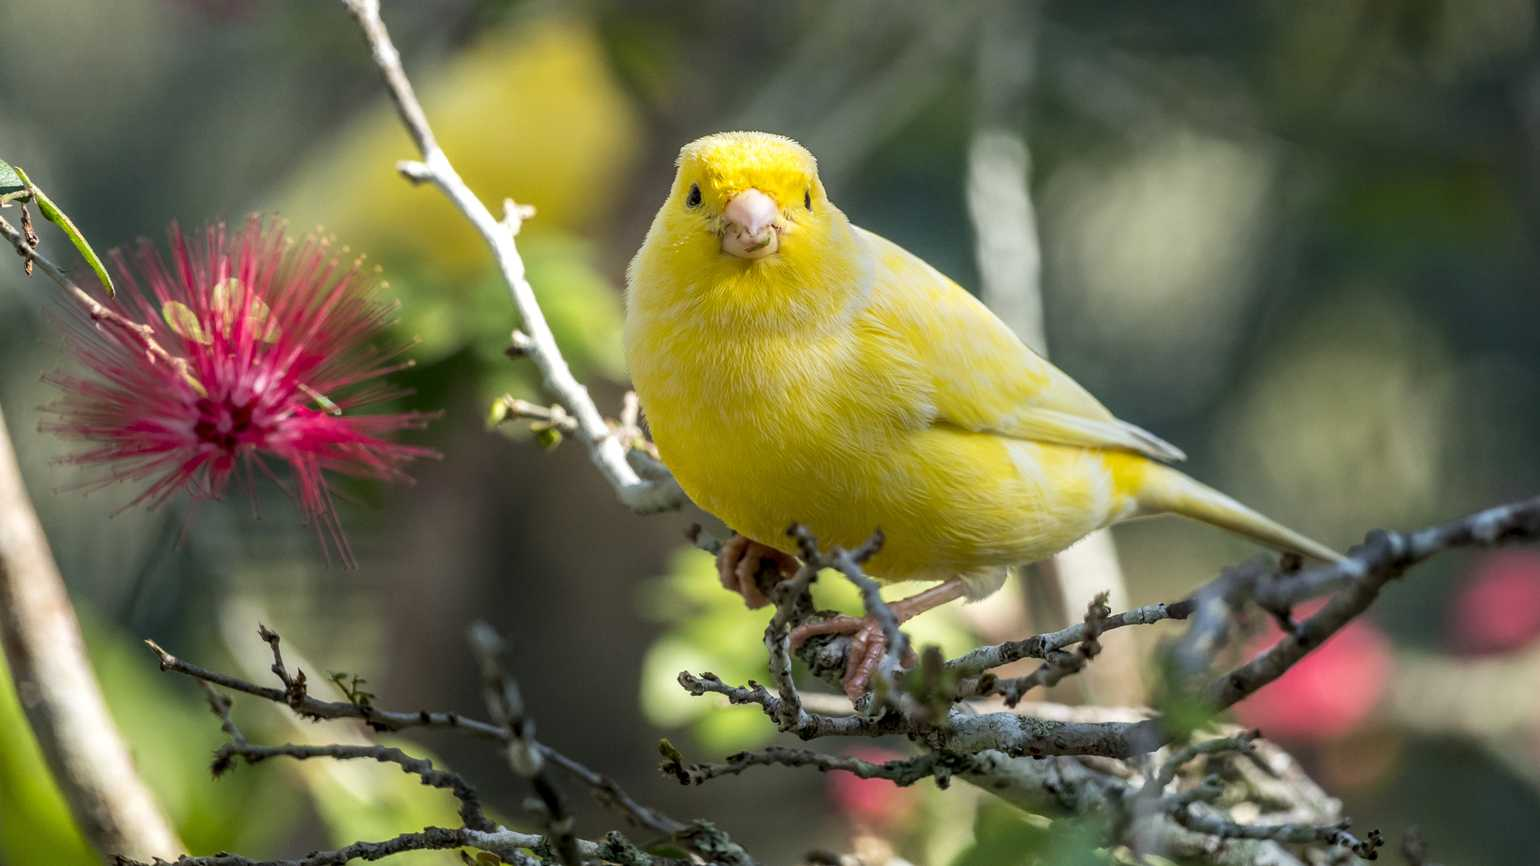 A yellow canary perched on a tree branch.